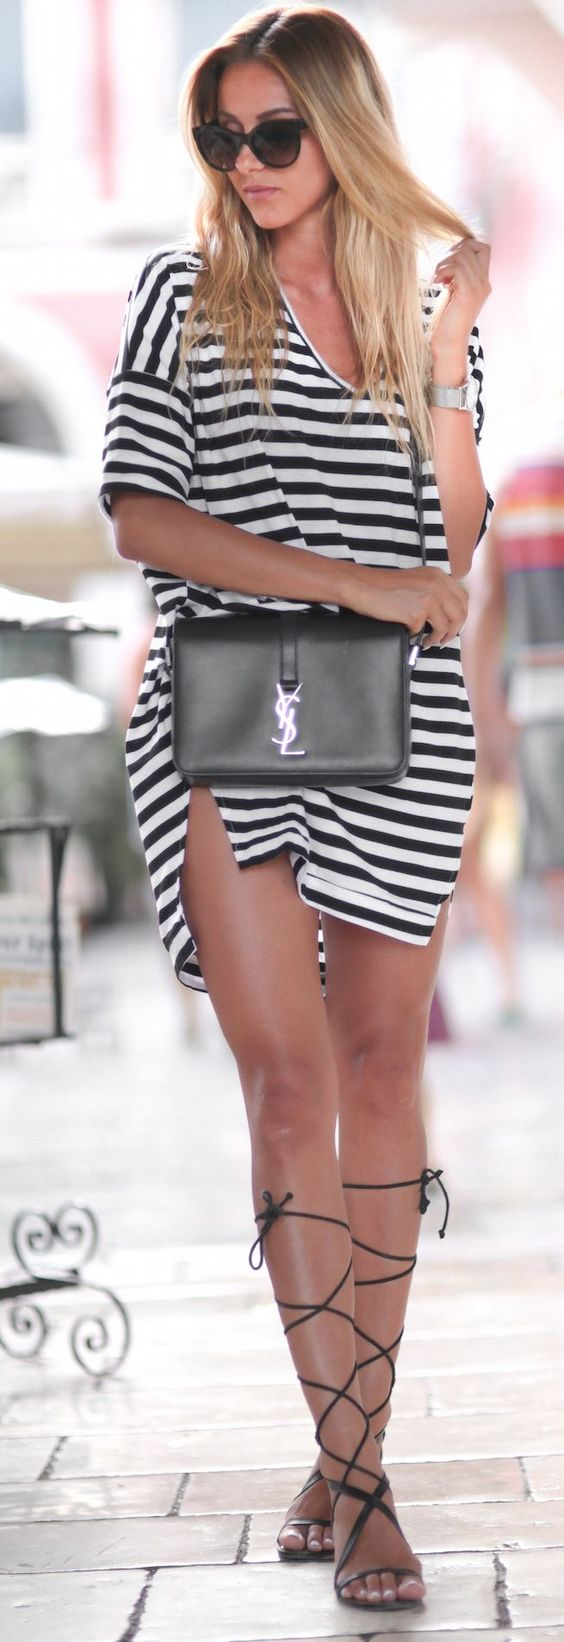 V-neck Striped Tee Dress Ysl Black Bag Black Flat Gladiators: